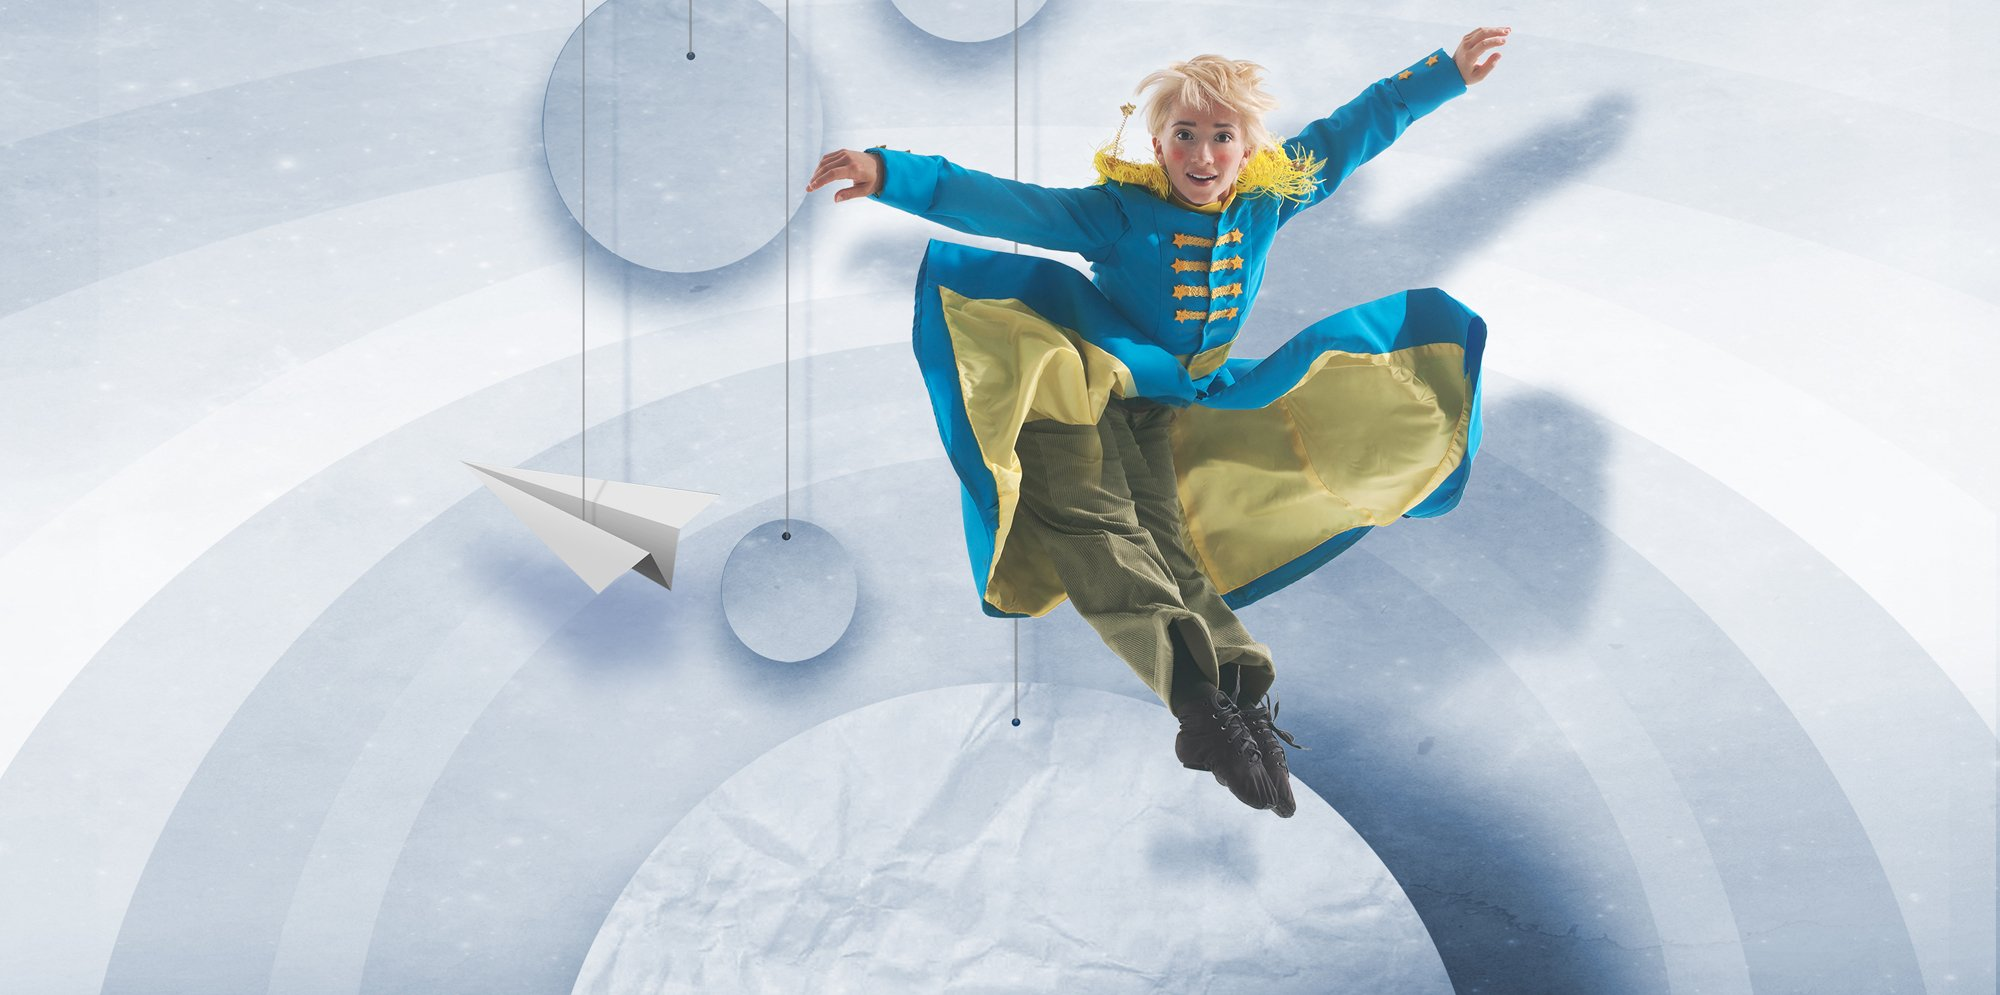 A blonde prince in a blue coat is jumping high in front of a scene of silver planets.